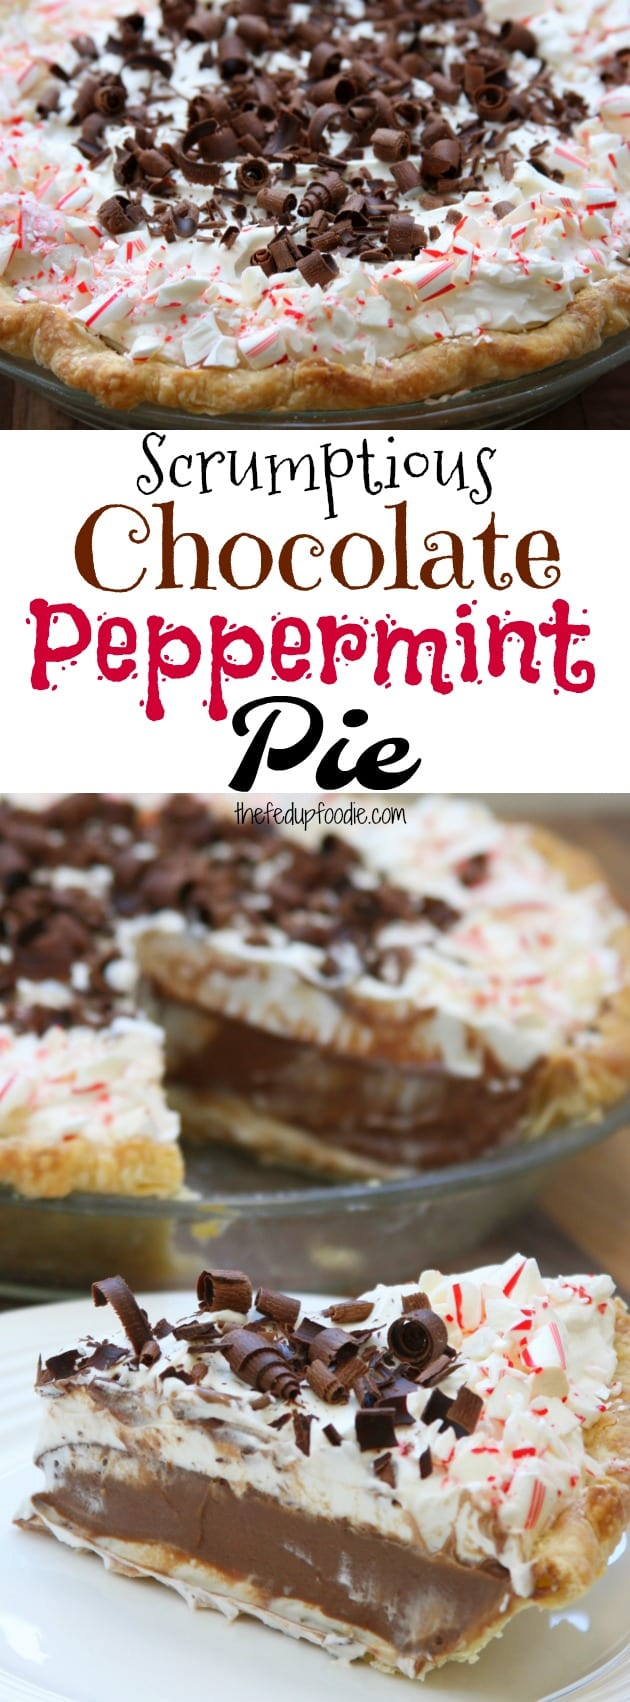 Scrumptious Chocolate Peppermint Pie recipe uses essential oil, extract version available also. 3 layers, peppermint cream cheese, chocolate peppermint and peppermint whipped cream.